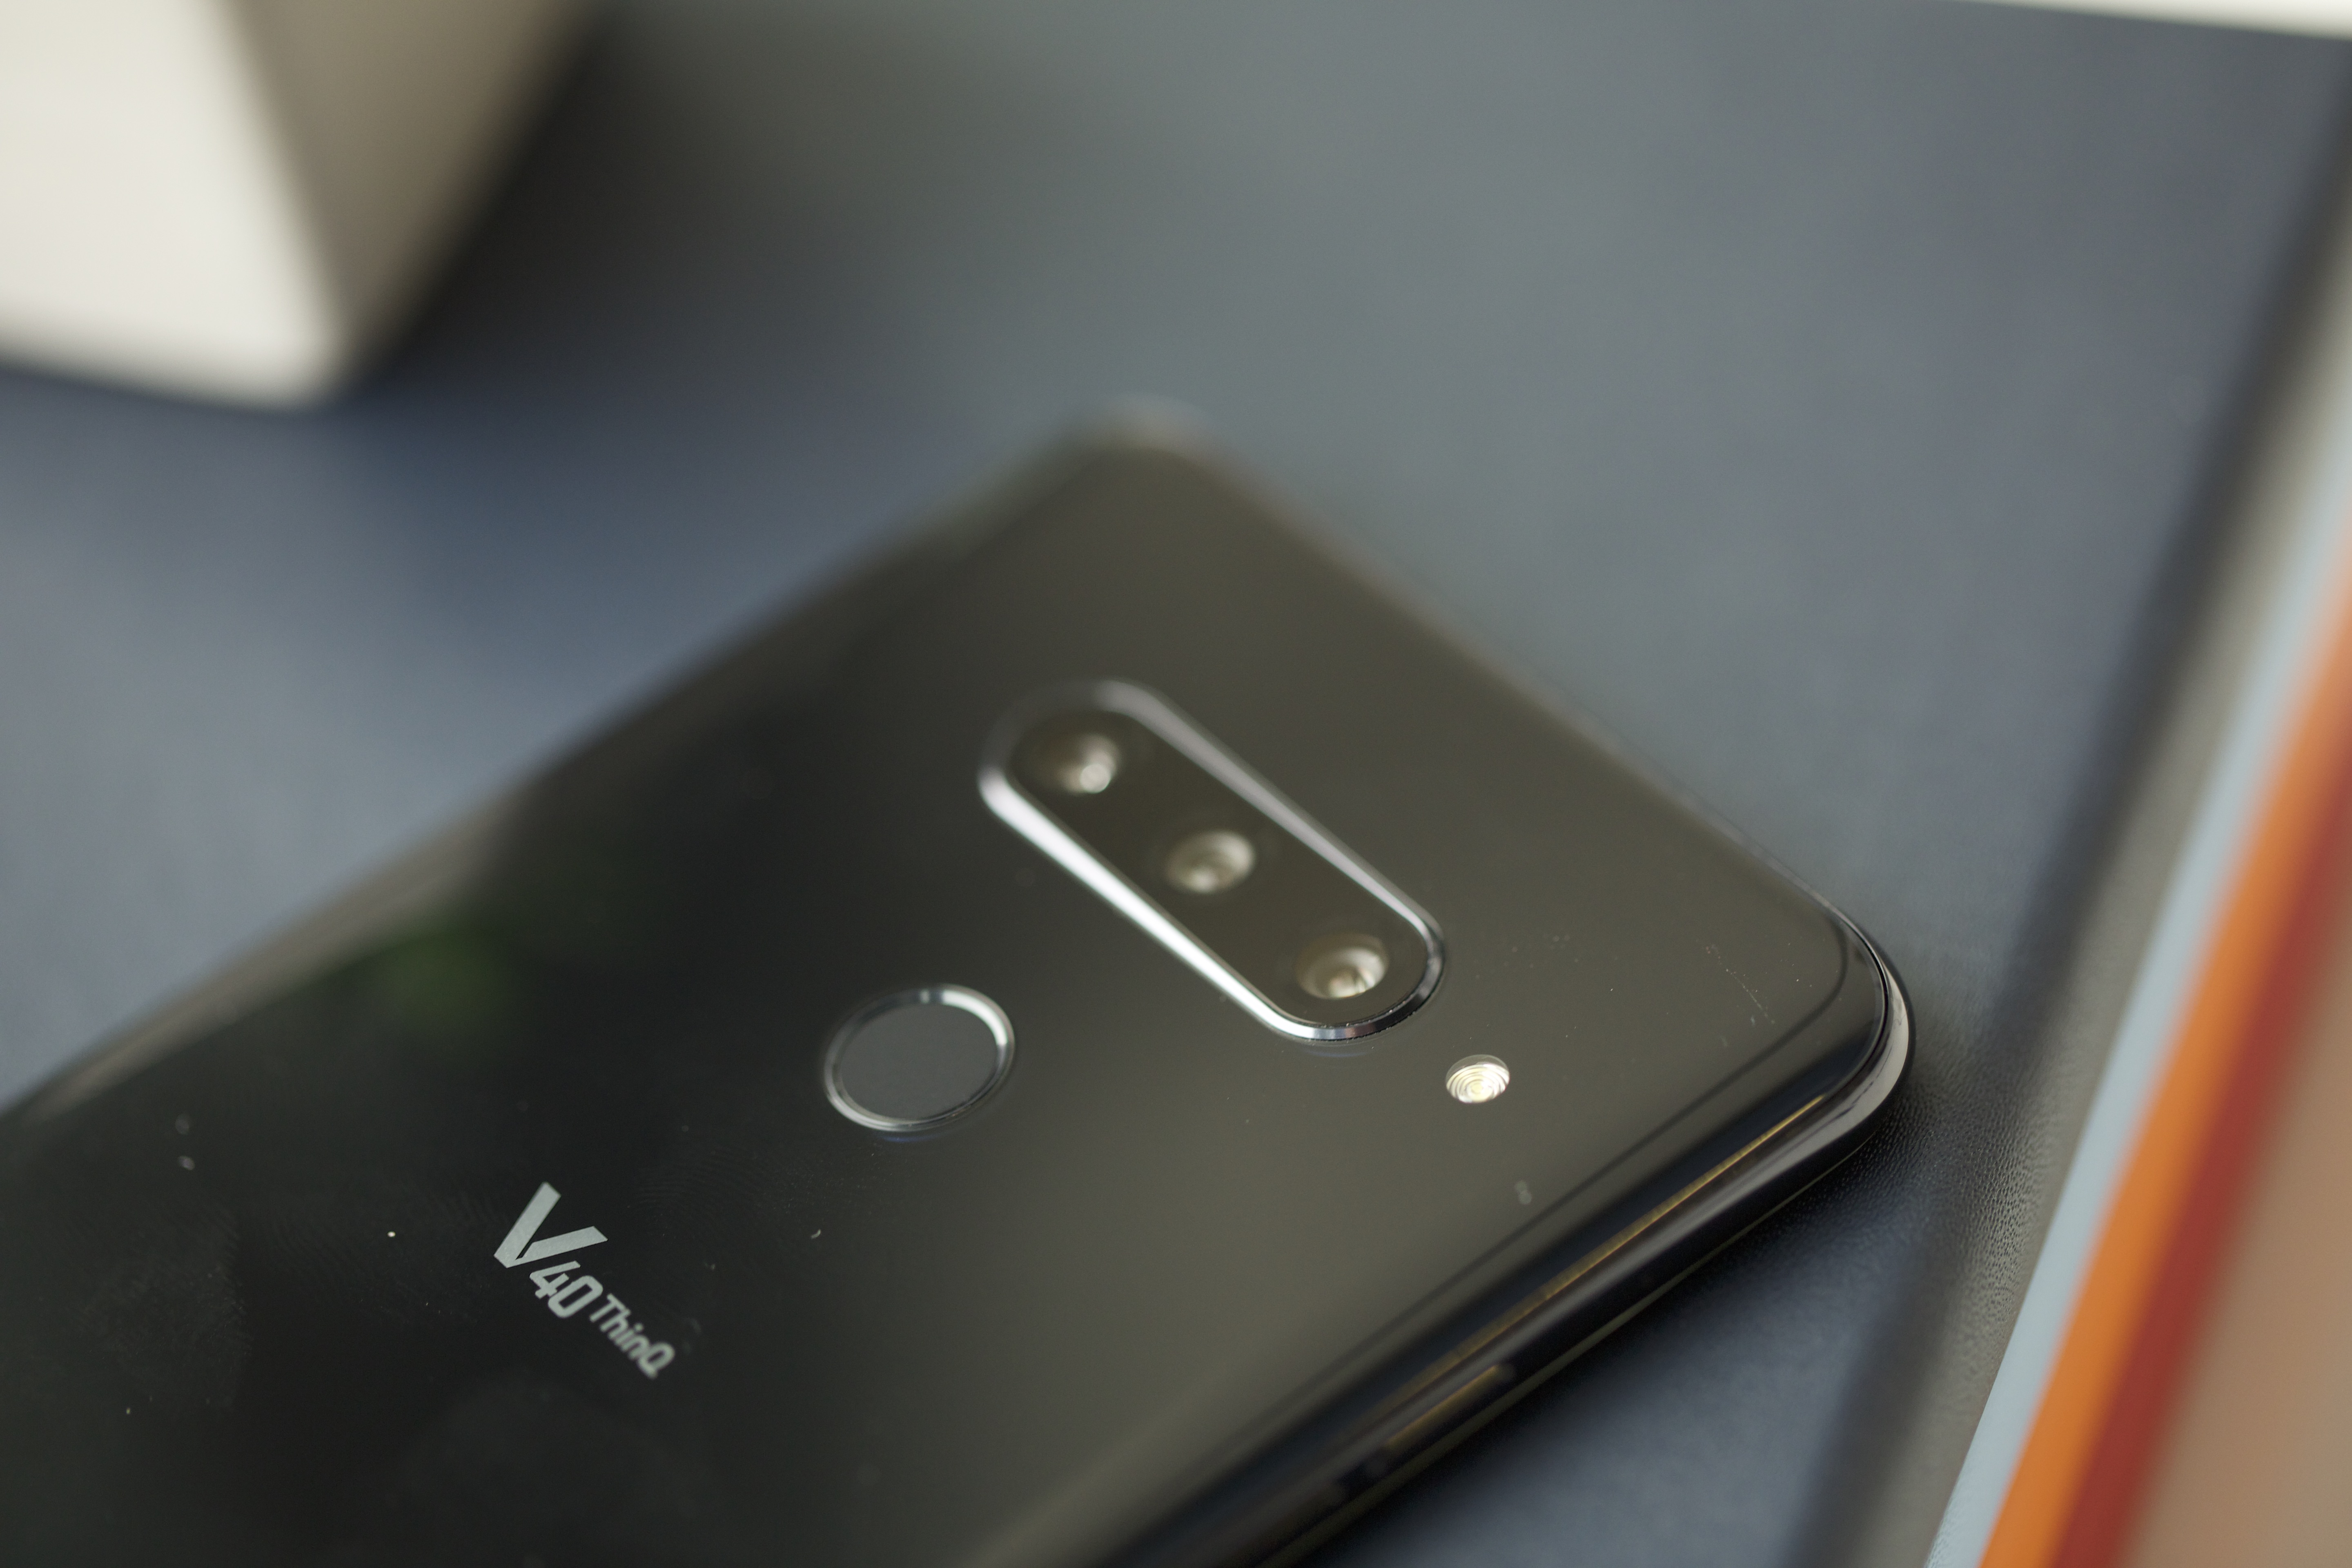 The V40 ThinQ is LG's new five-camera smartphone